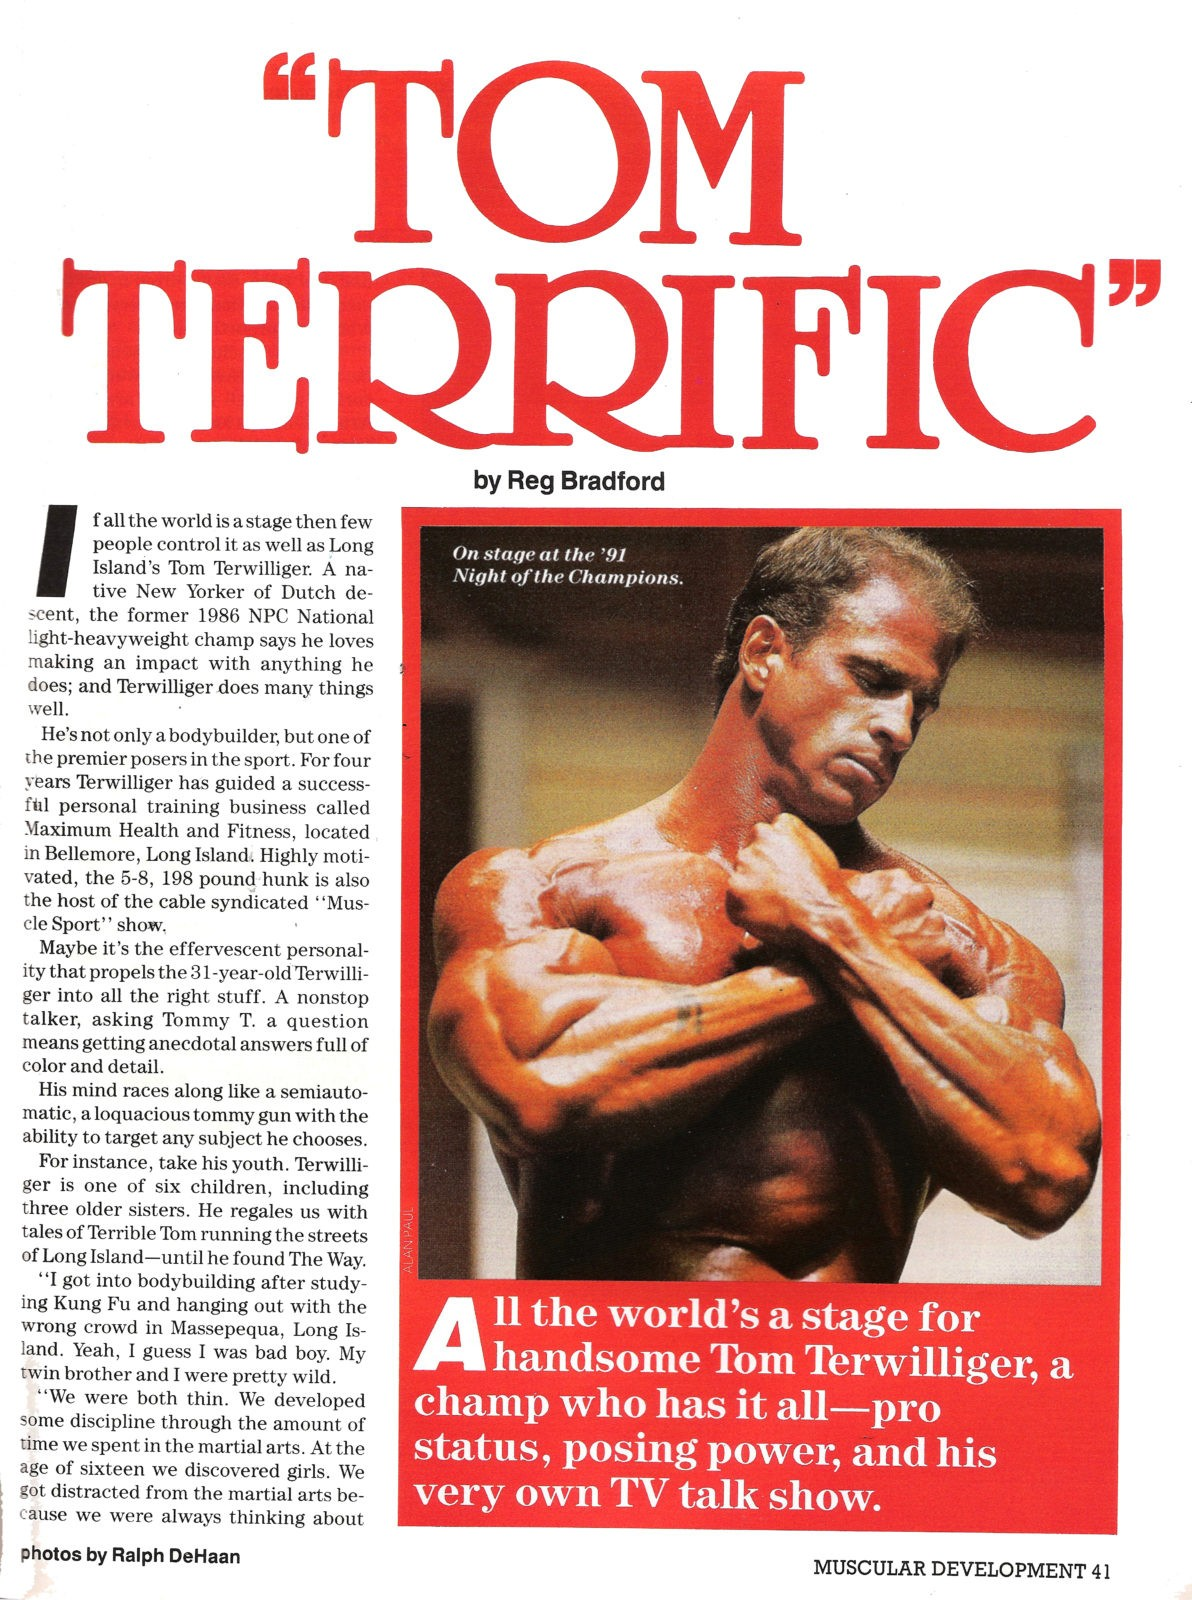 ARTICLE-Tom-Terrific-Muscular-Dev-1991-Tom-Terwilliger